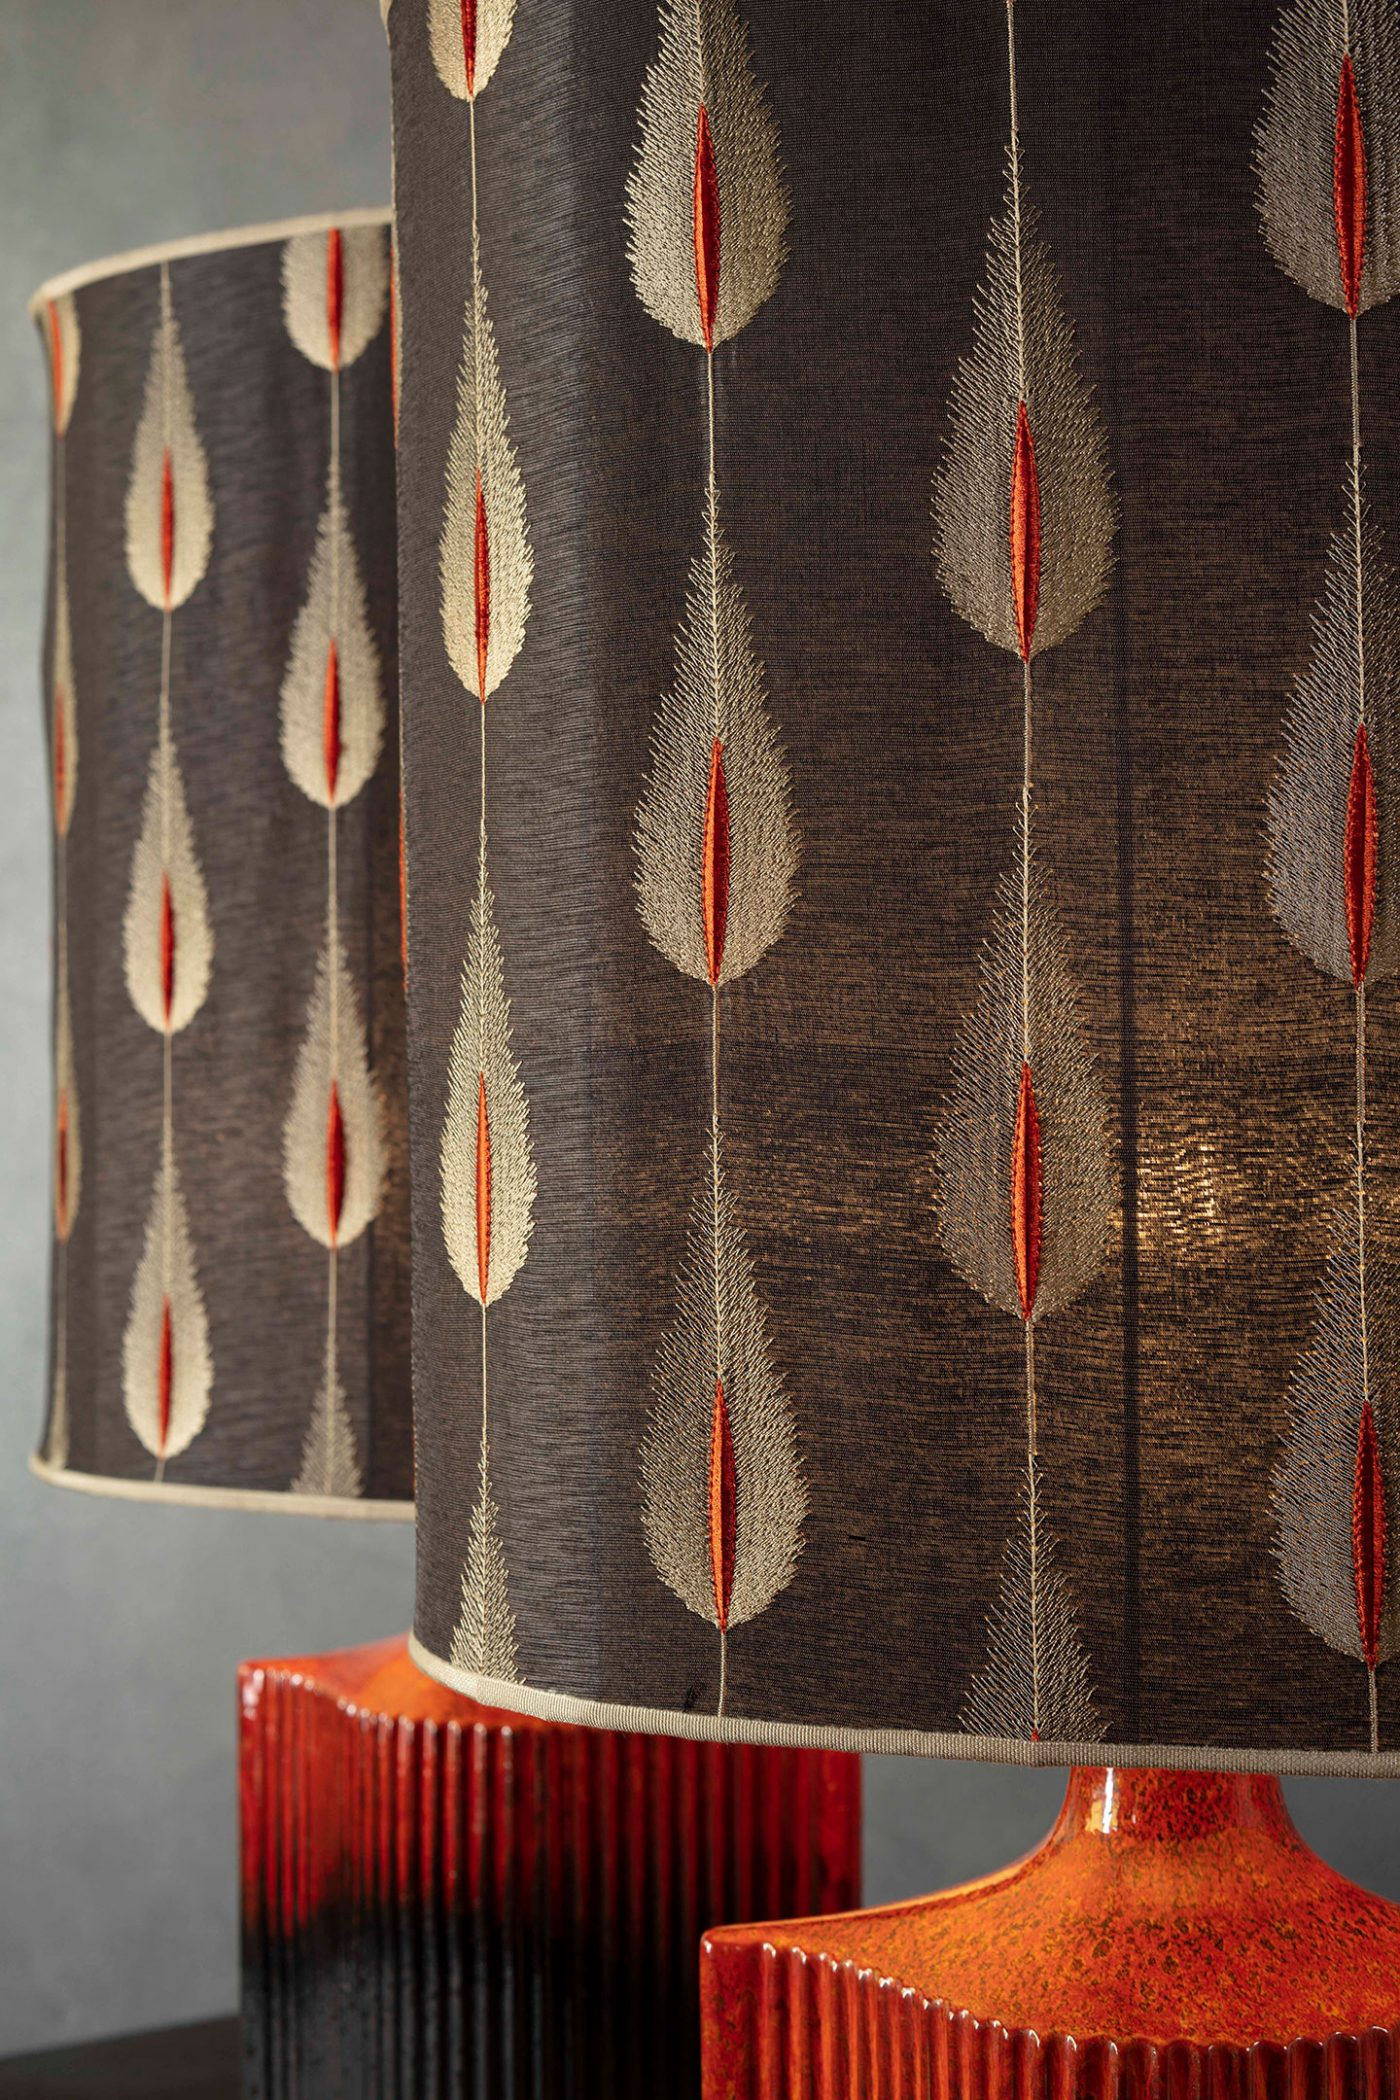 lampshades-featherdeisgn-by-harry-clark-lava-lamp